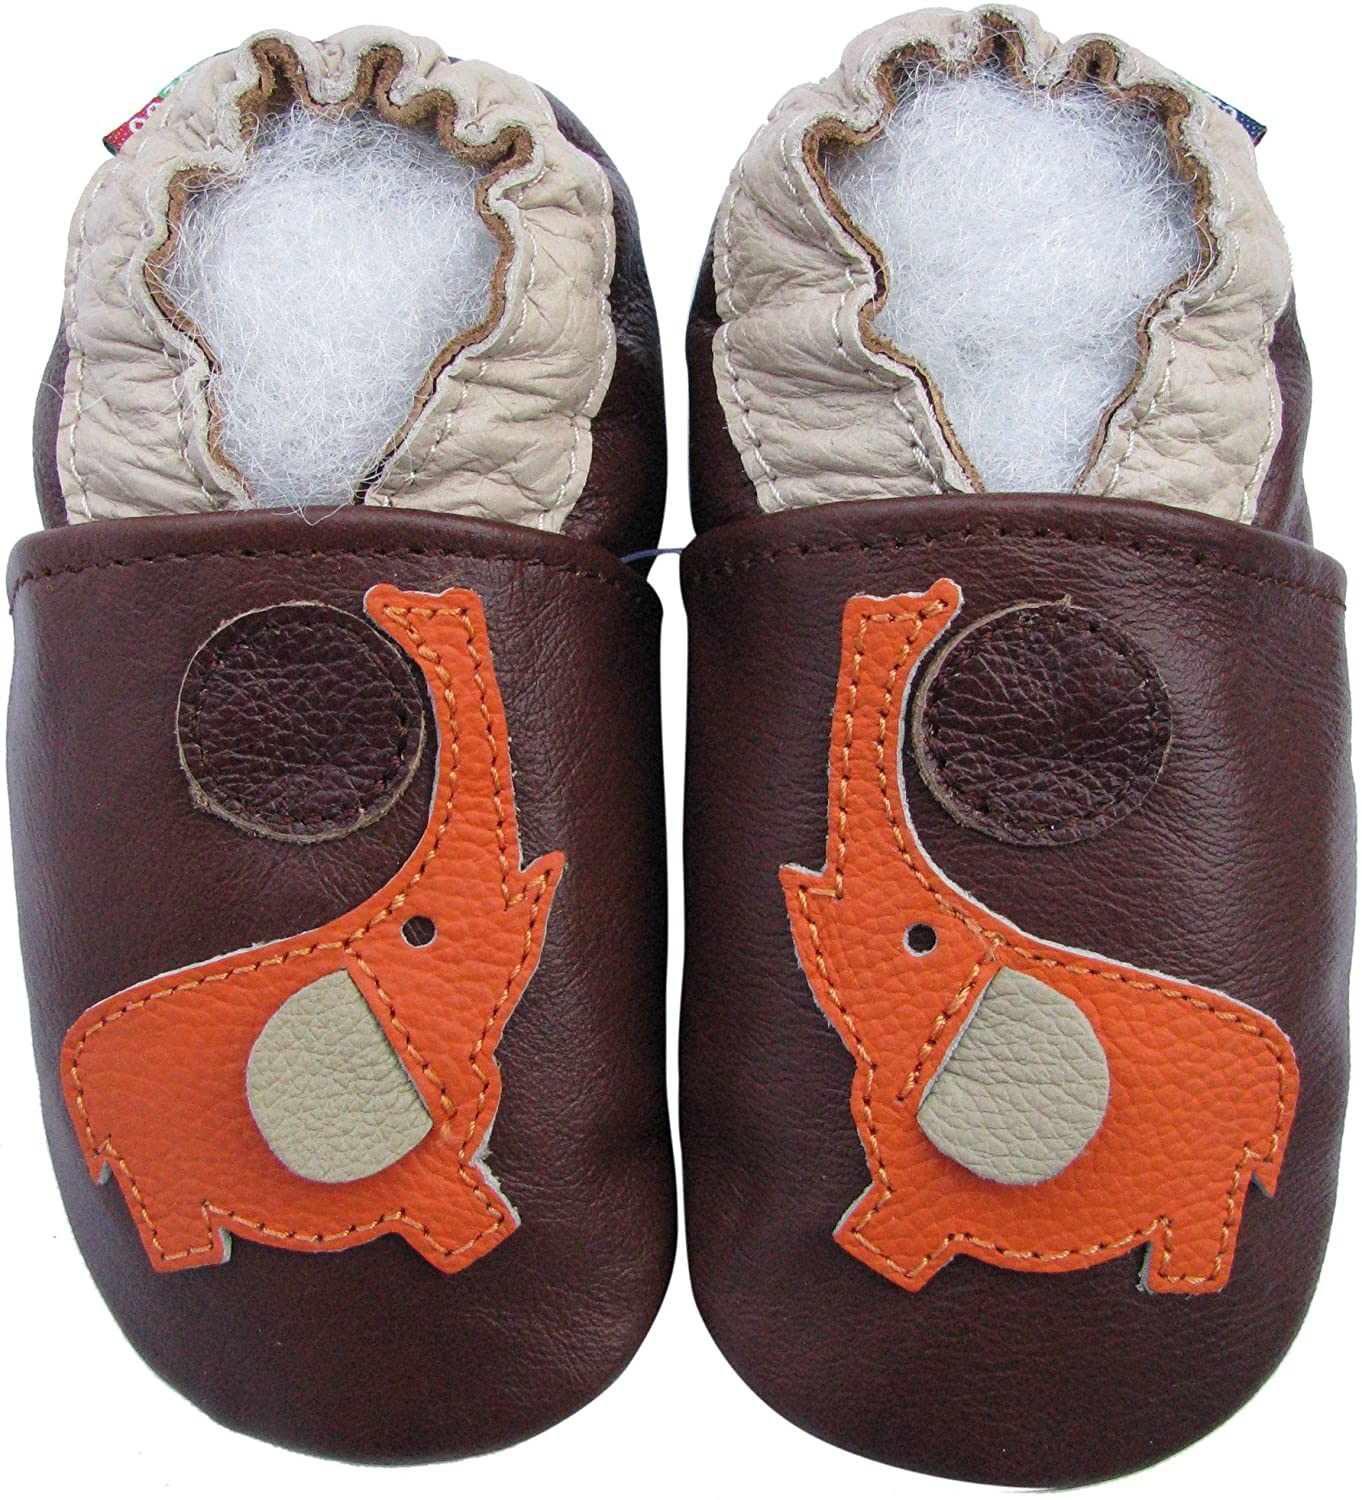 Carozoo Elephant Brown Unisex Baby Soft Sole Leather Shoes